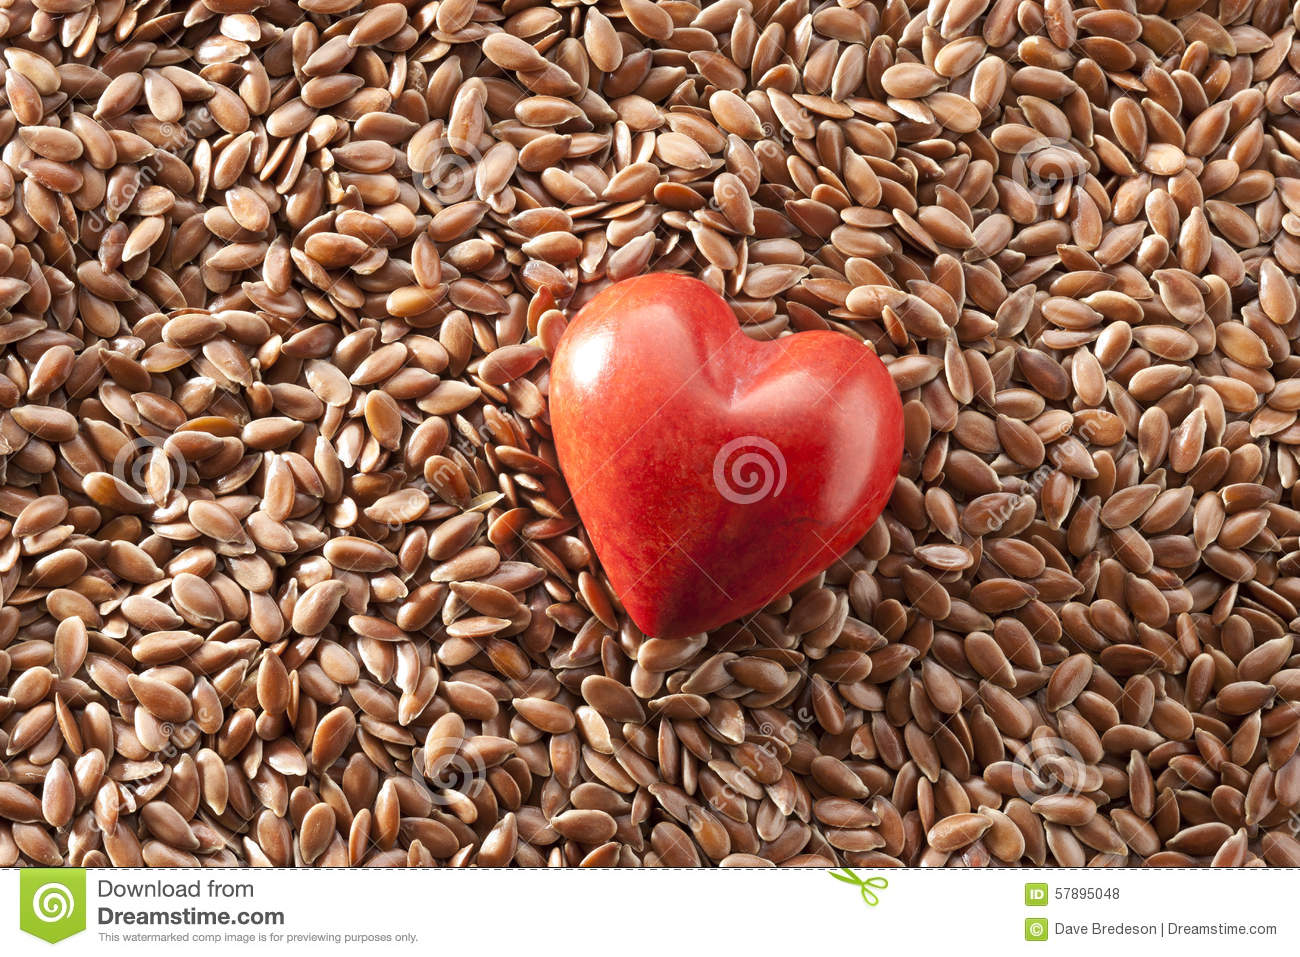 how to eat linseed seed